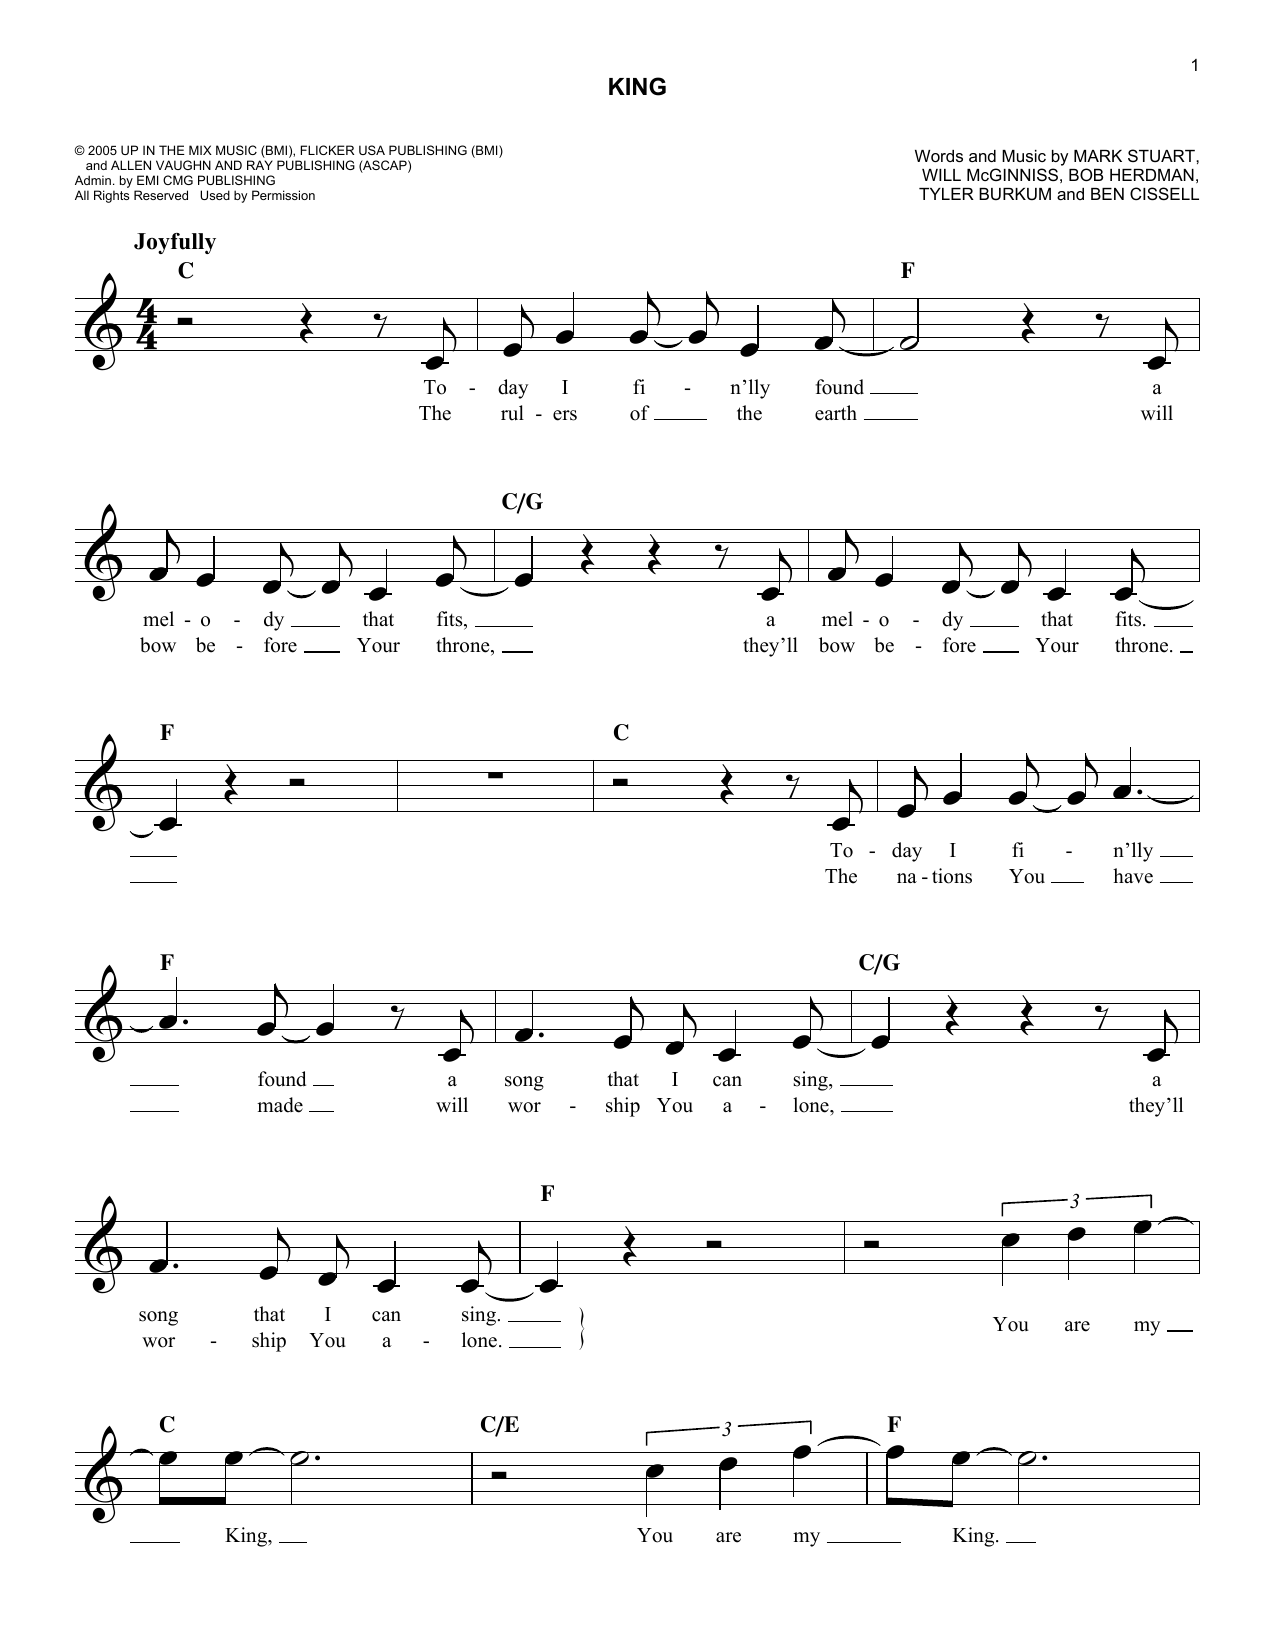 King chords by audio adrenaline melody line lyrics chords audio adrenaline king melody line lyrics chords hexwebz Choice Image